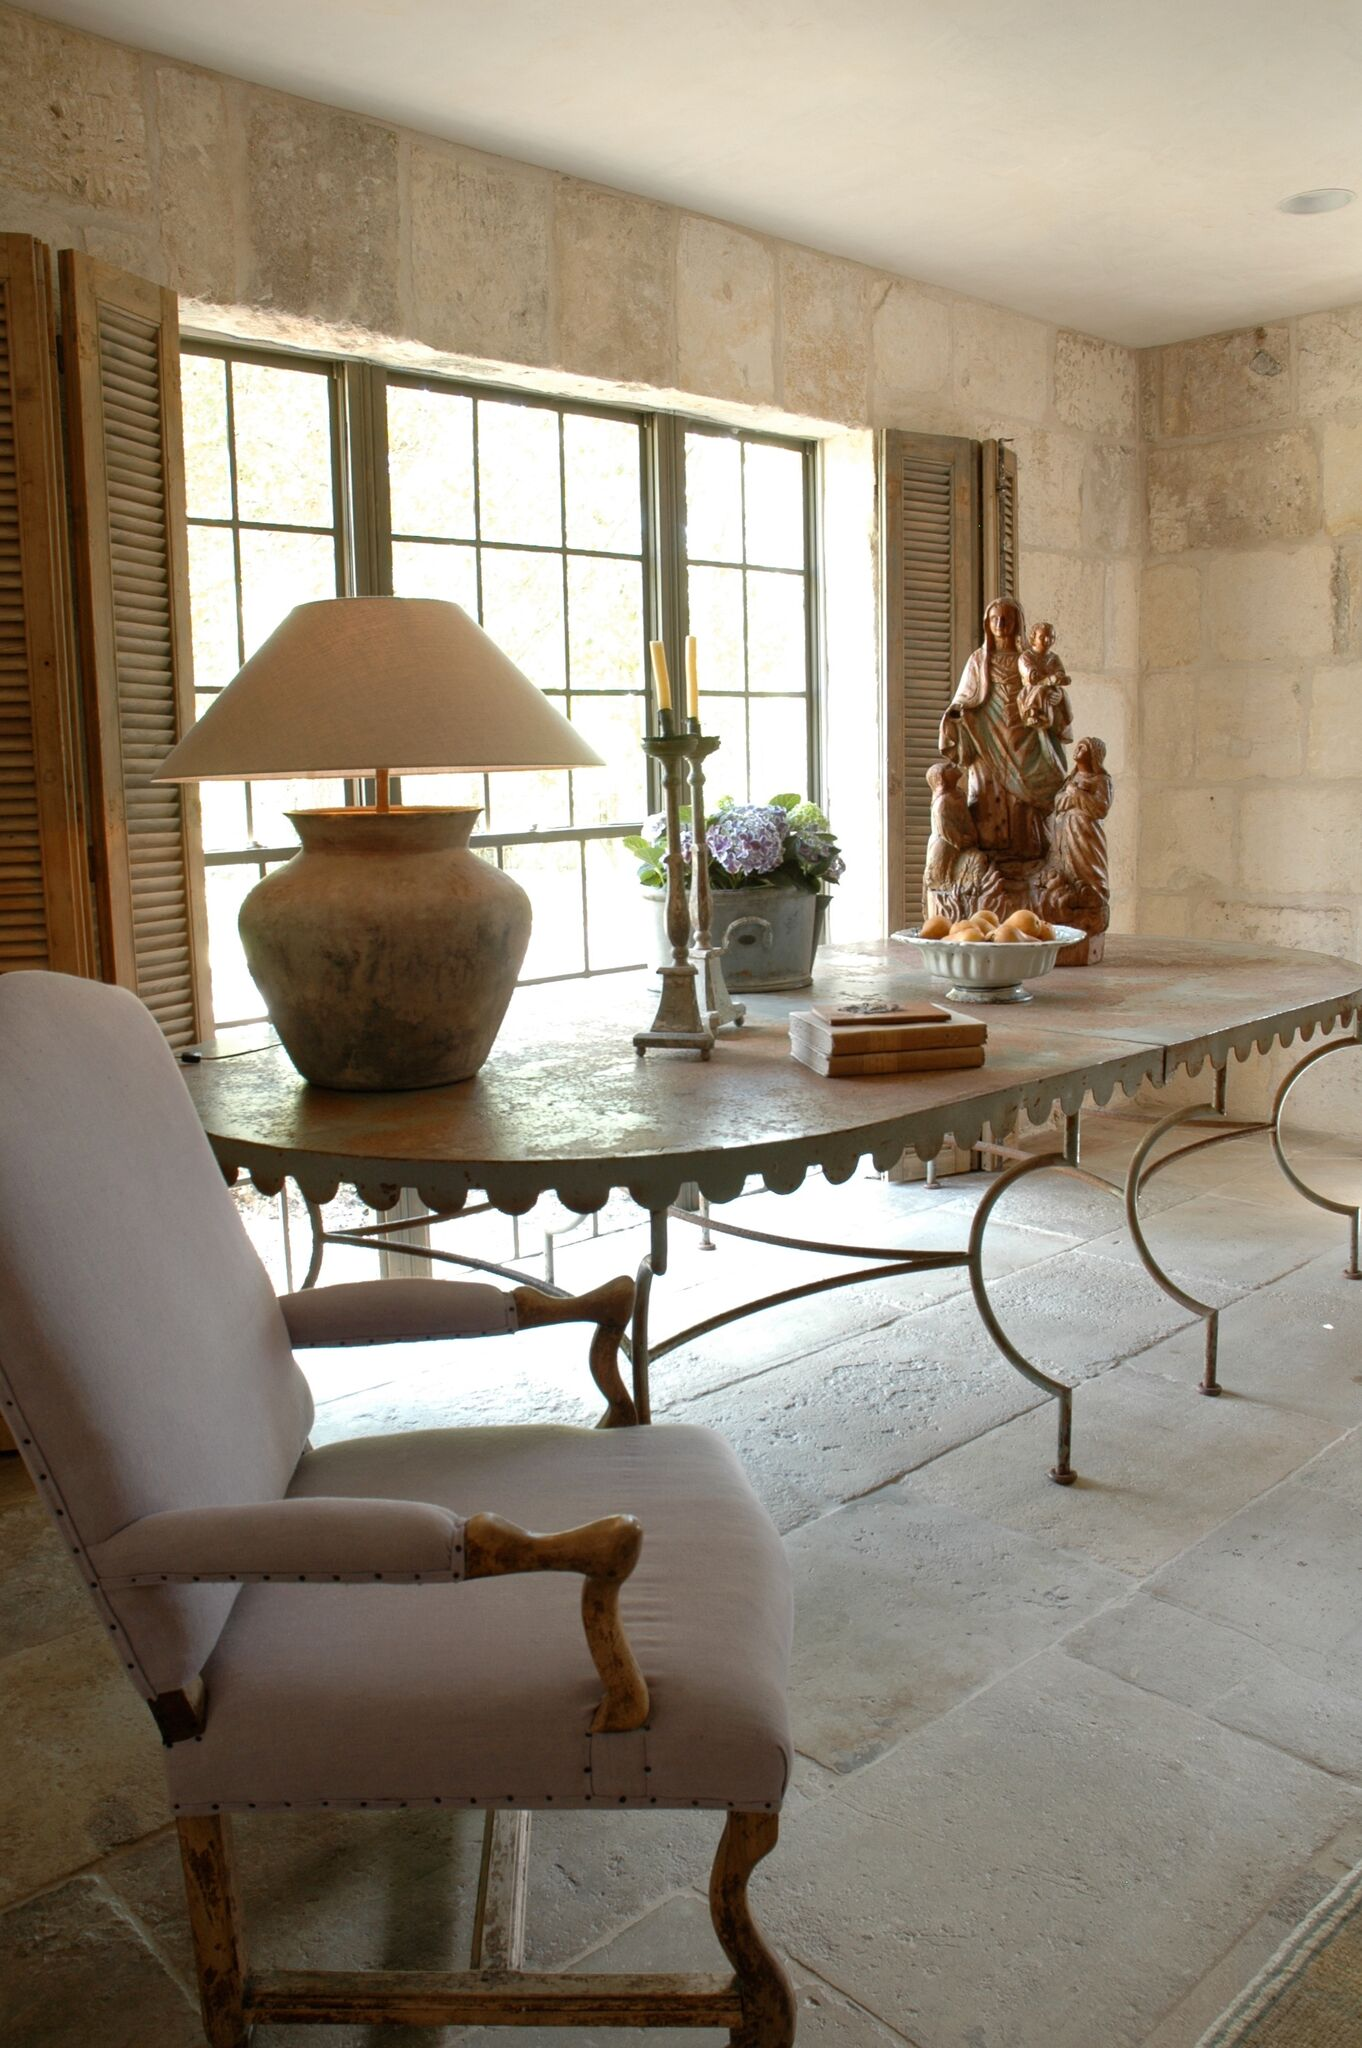 Chateau Domingue Timeless European Elegance and French farmhouse style converge in this house tour of founder Ruth Gay's home on Hello Lovely. Reclaimed stone, antique doors and mantels, and one of a kind architectural elements. #housetour #frenchcountry #frenchfarmhouse #europeanfarmhouse #chateaudomingue #rusticdecor #pamelapierce #elegantdecor #antiques #livingroom #limestone